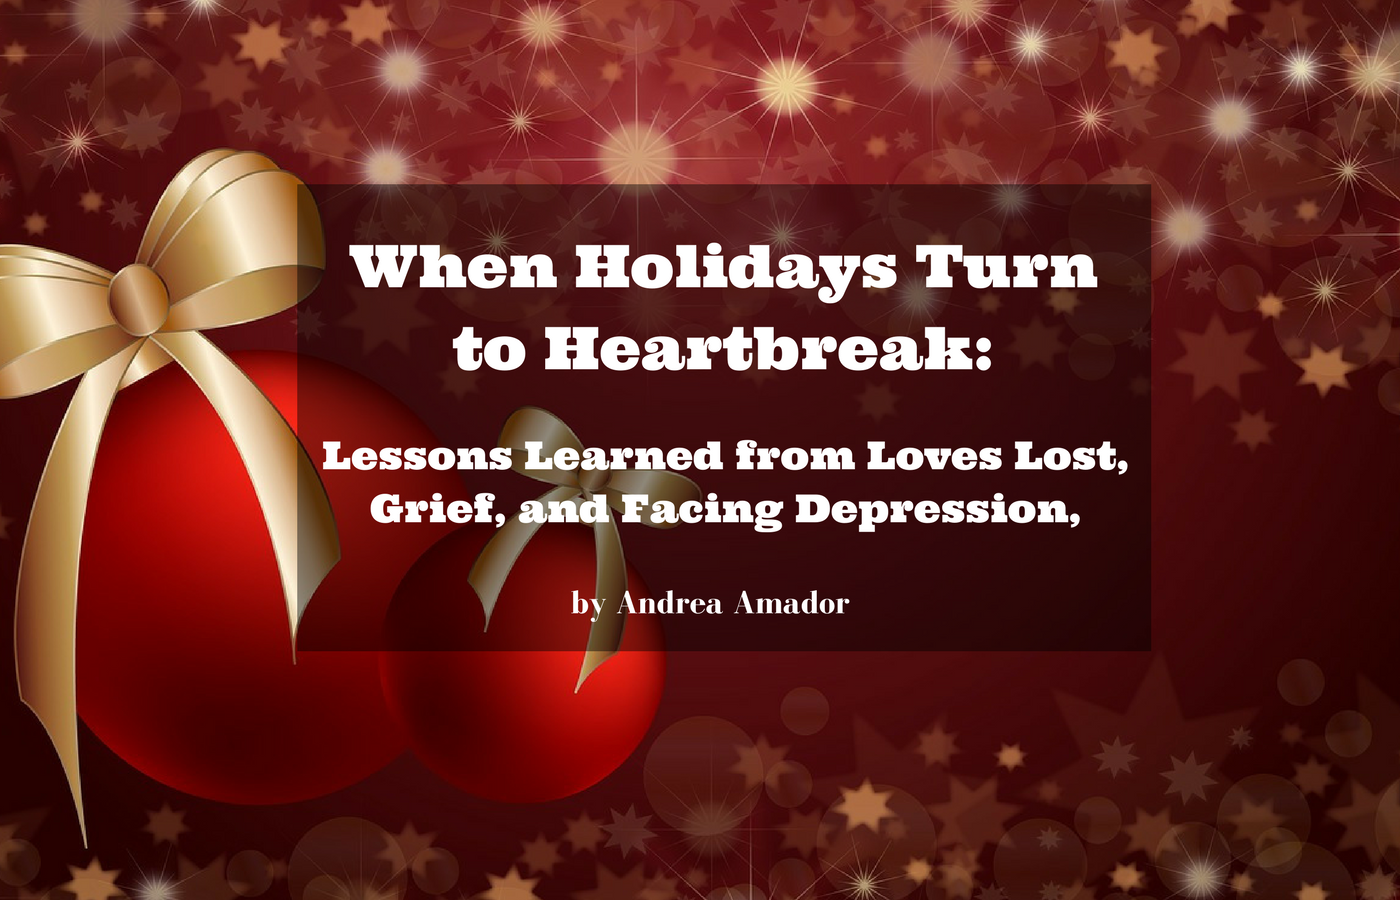 When Holidays Turn to Heartbreak: Lessons Learned from Loves Lost, Grief, and Facing Depression